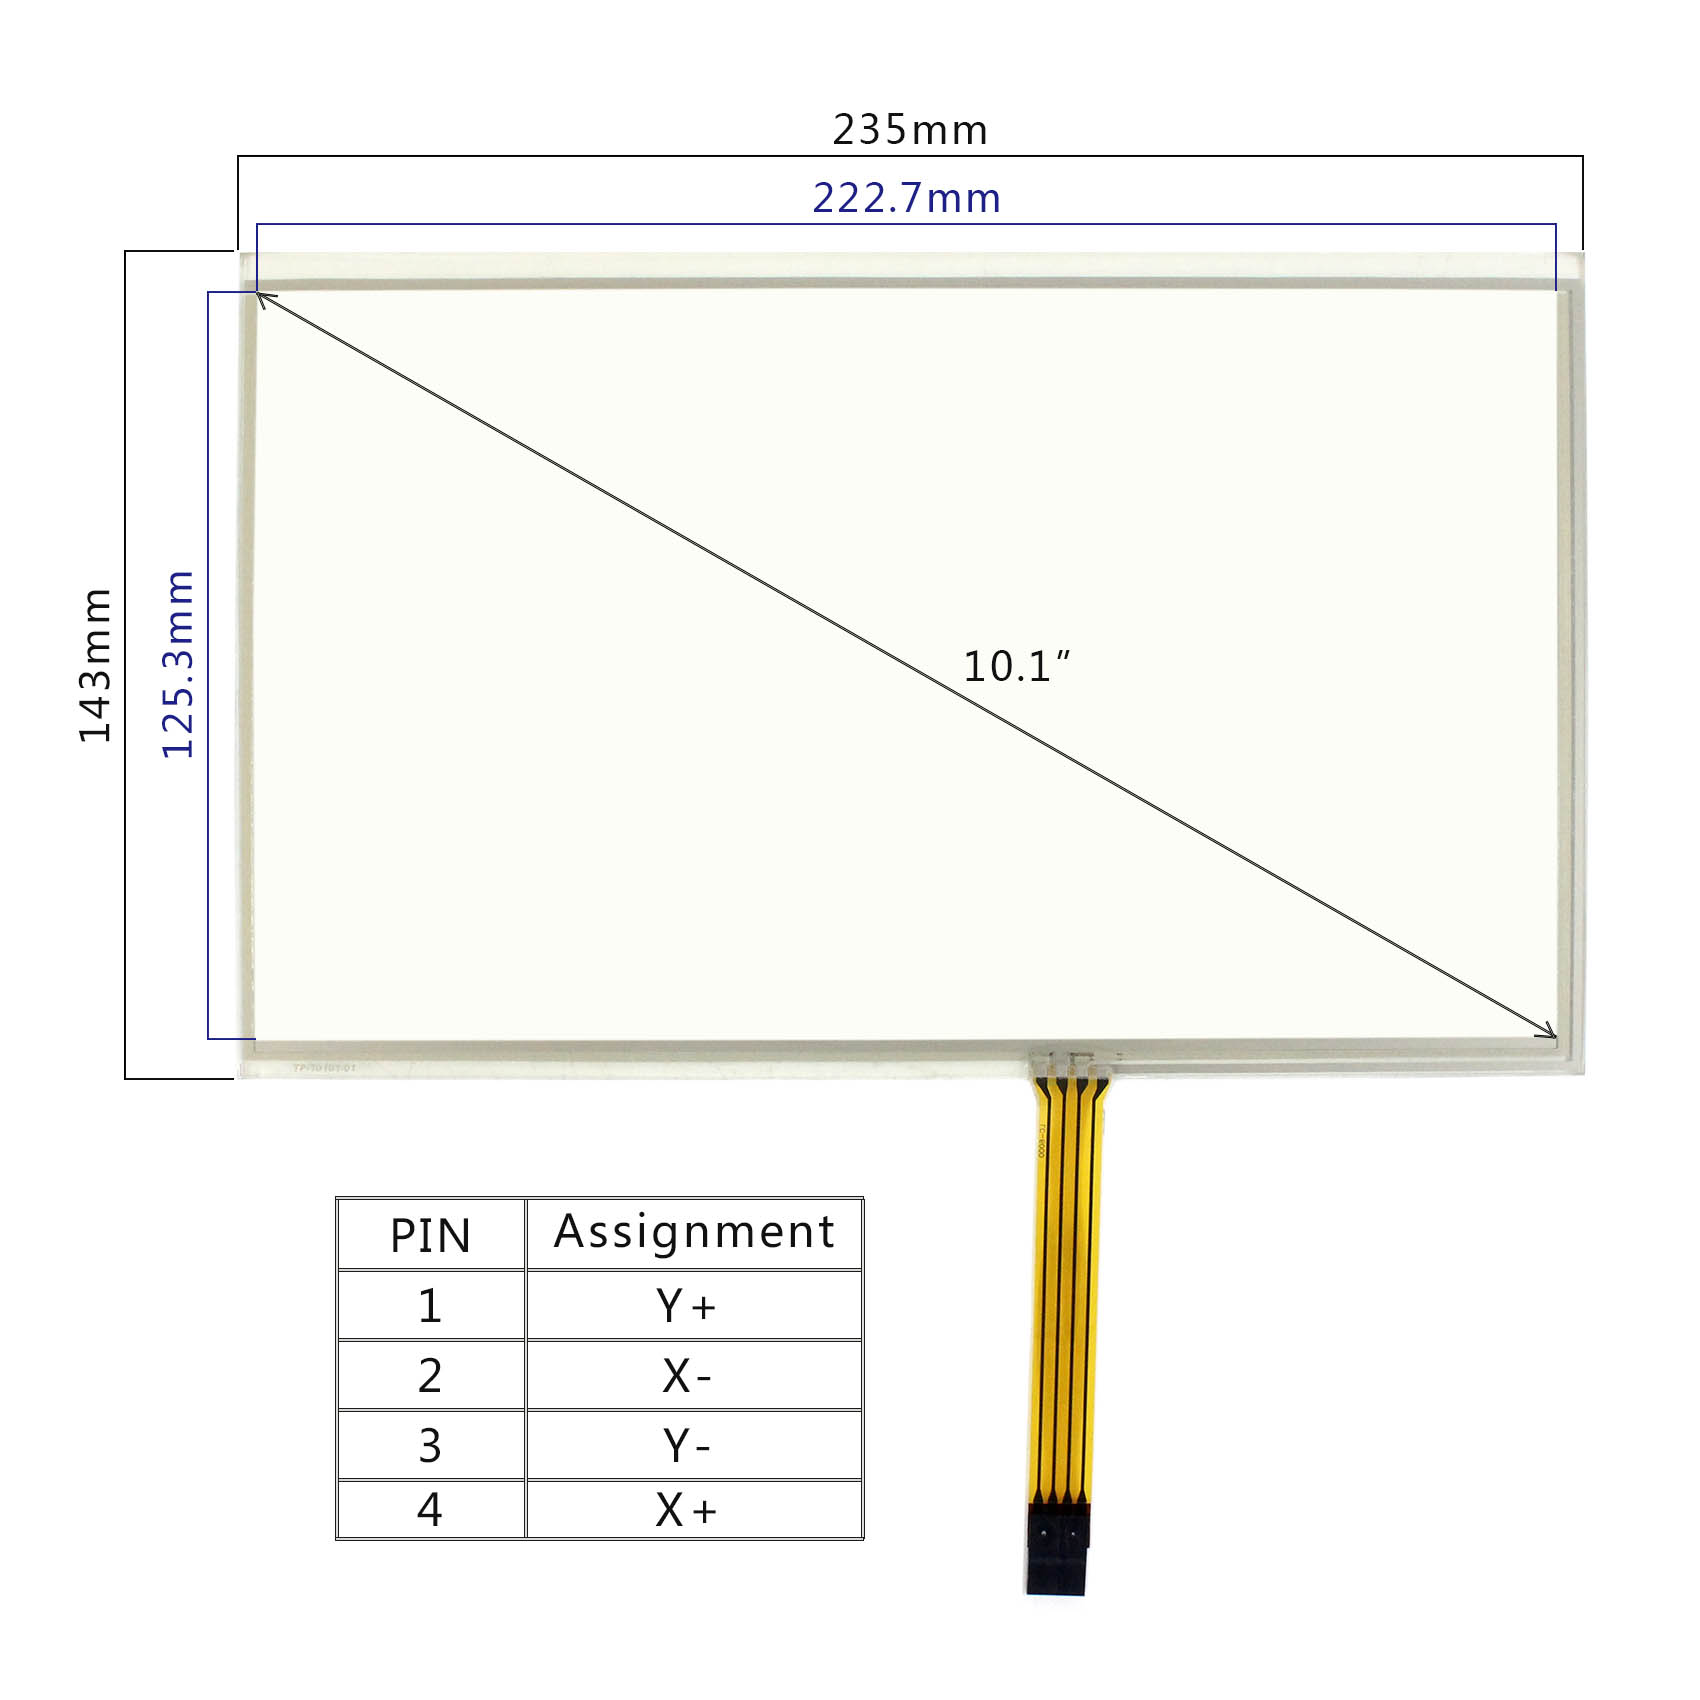 hight resolution of details about 4pin fpc connector dimension size 235mm x 143mm work for 10 1inch lcd screen